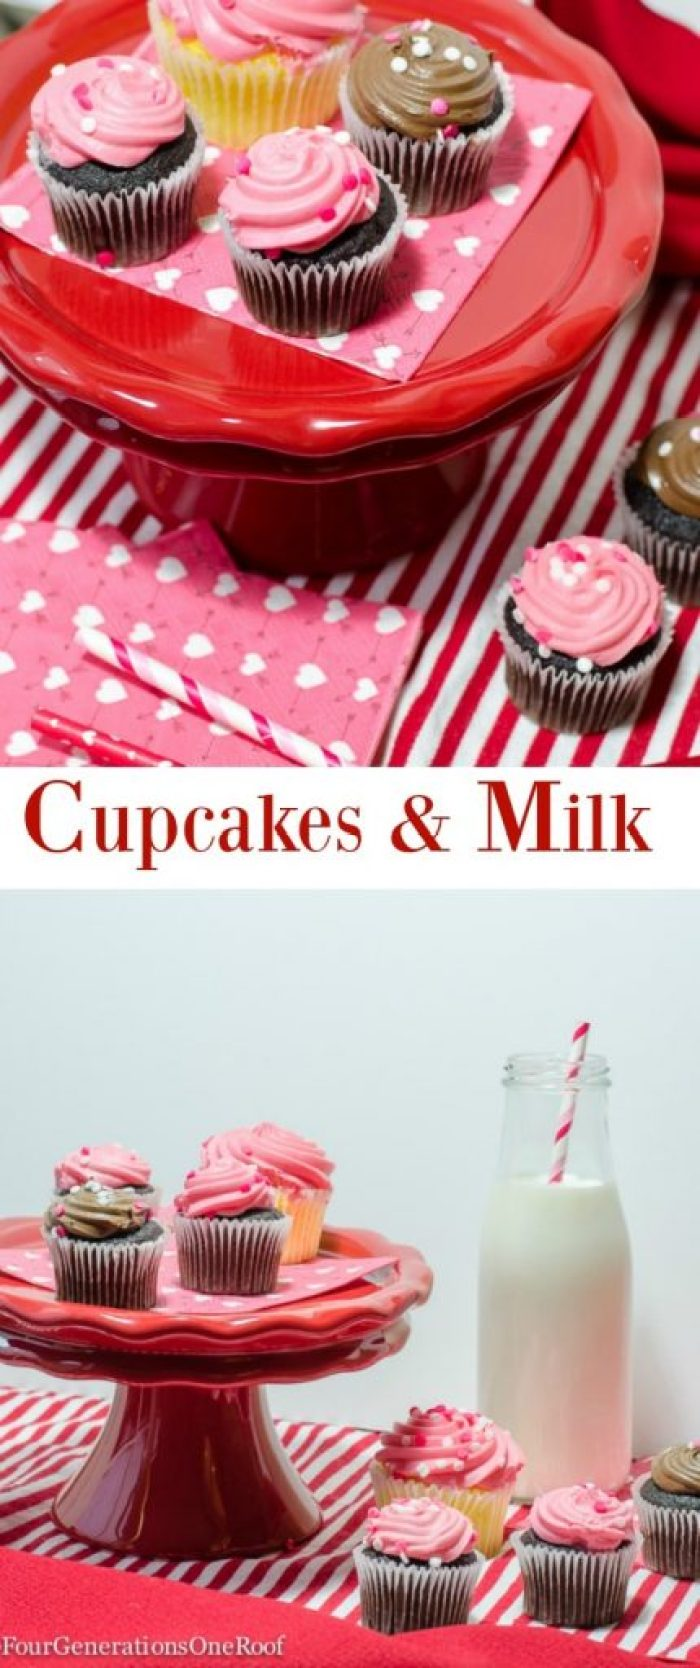 cupcakes and milk jars / host a cupcake party with fun milk cars and cake tiered platters